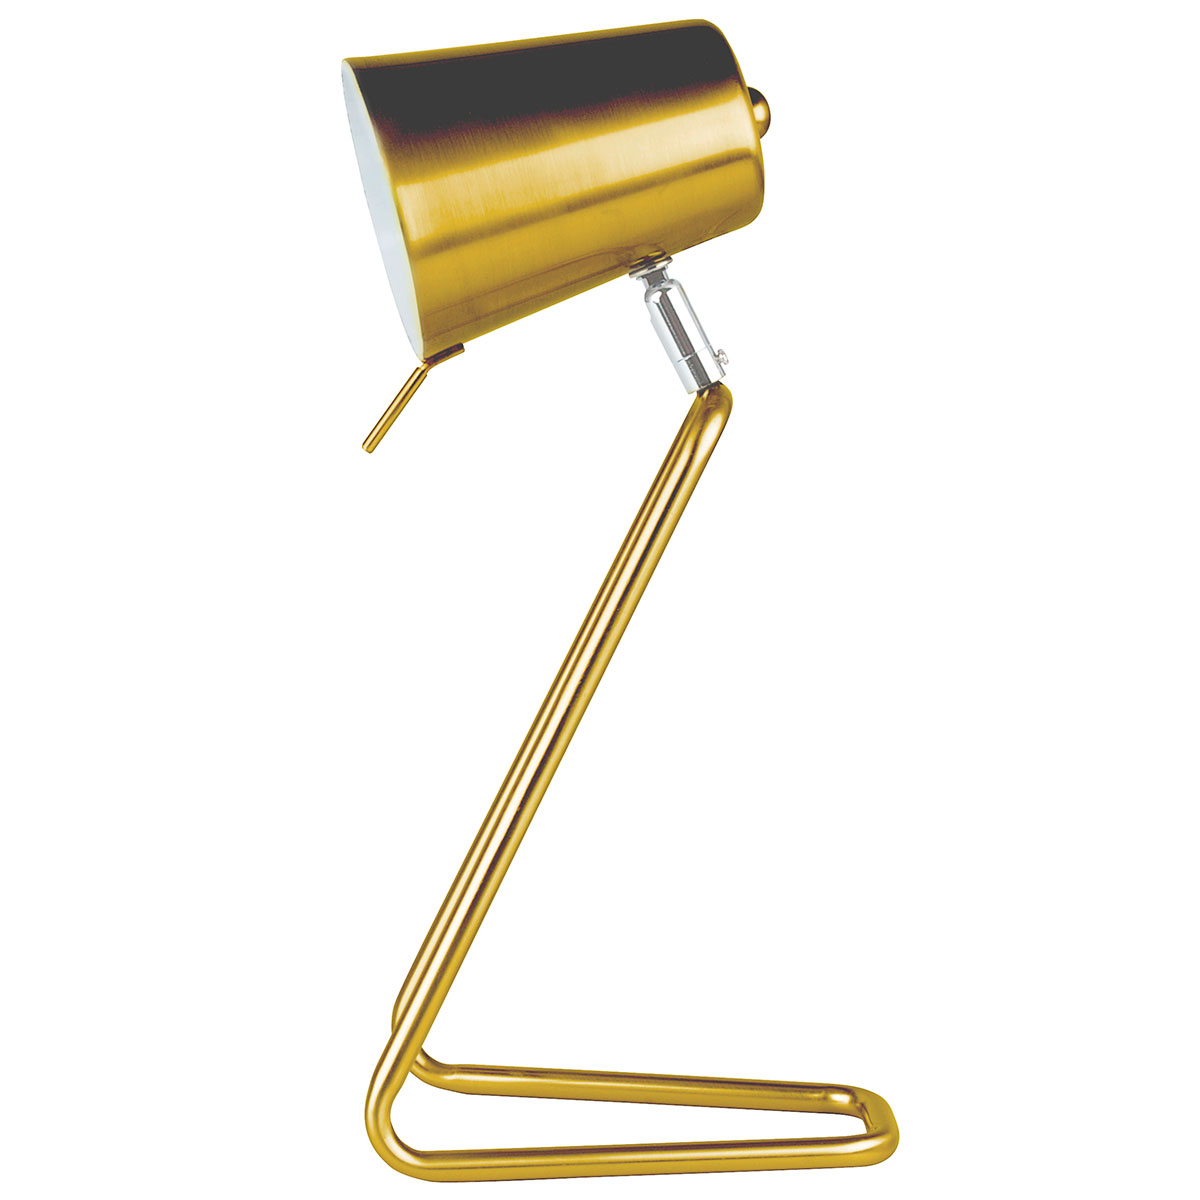 Image of   Leitmotiv bordlampe - Z Metallic - LM1129 - Guld